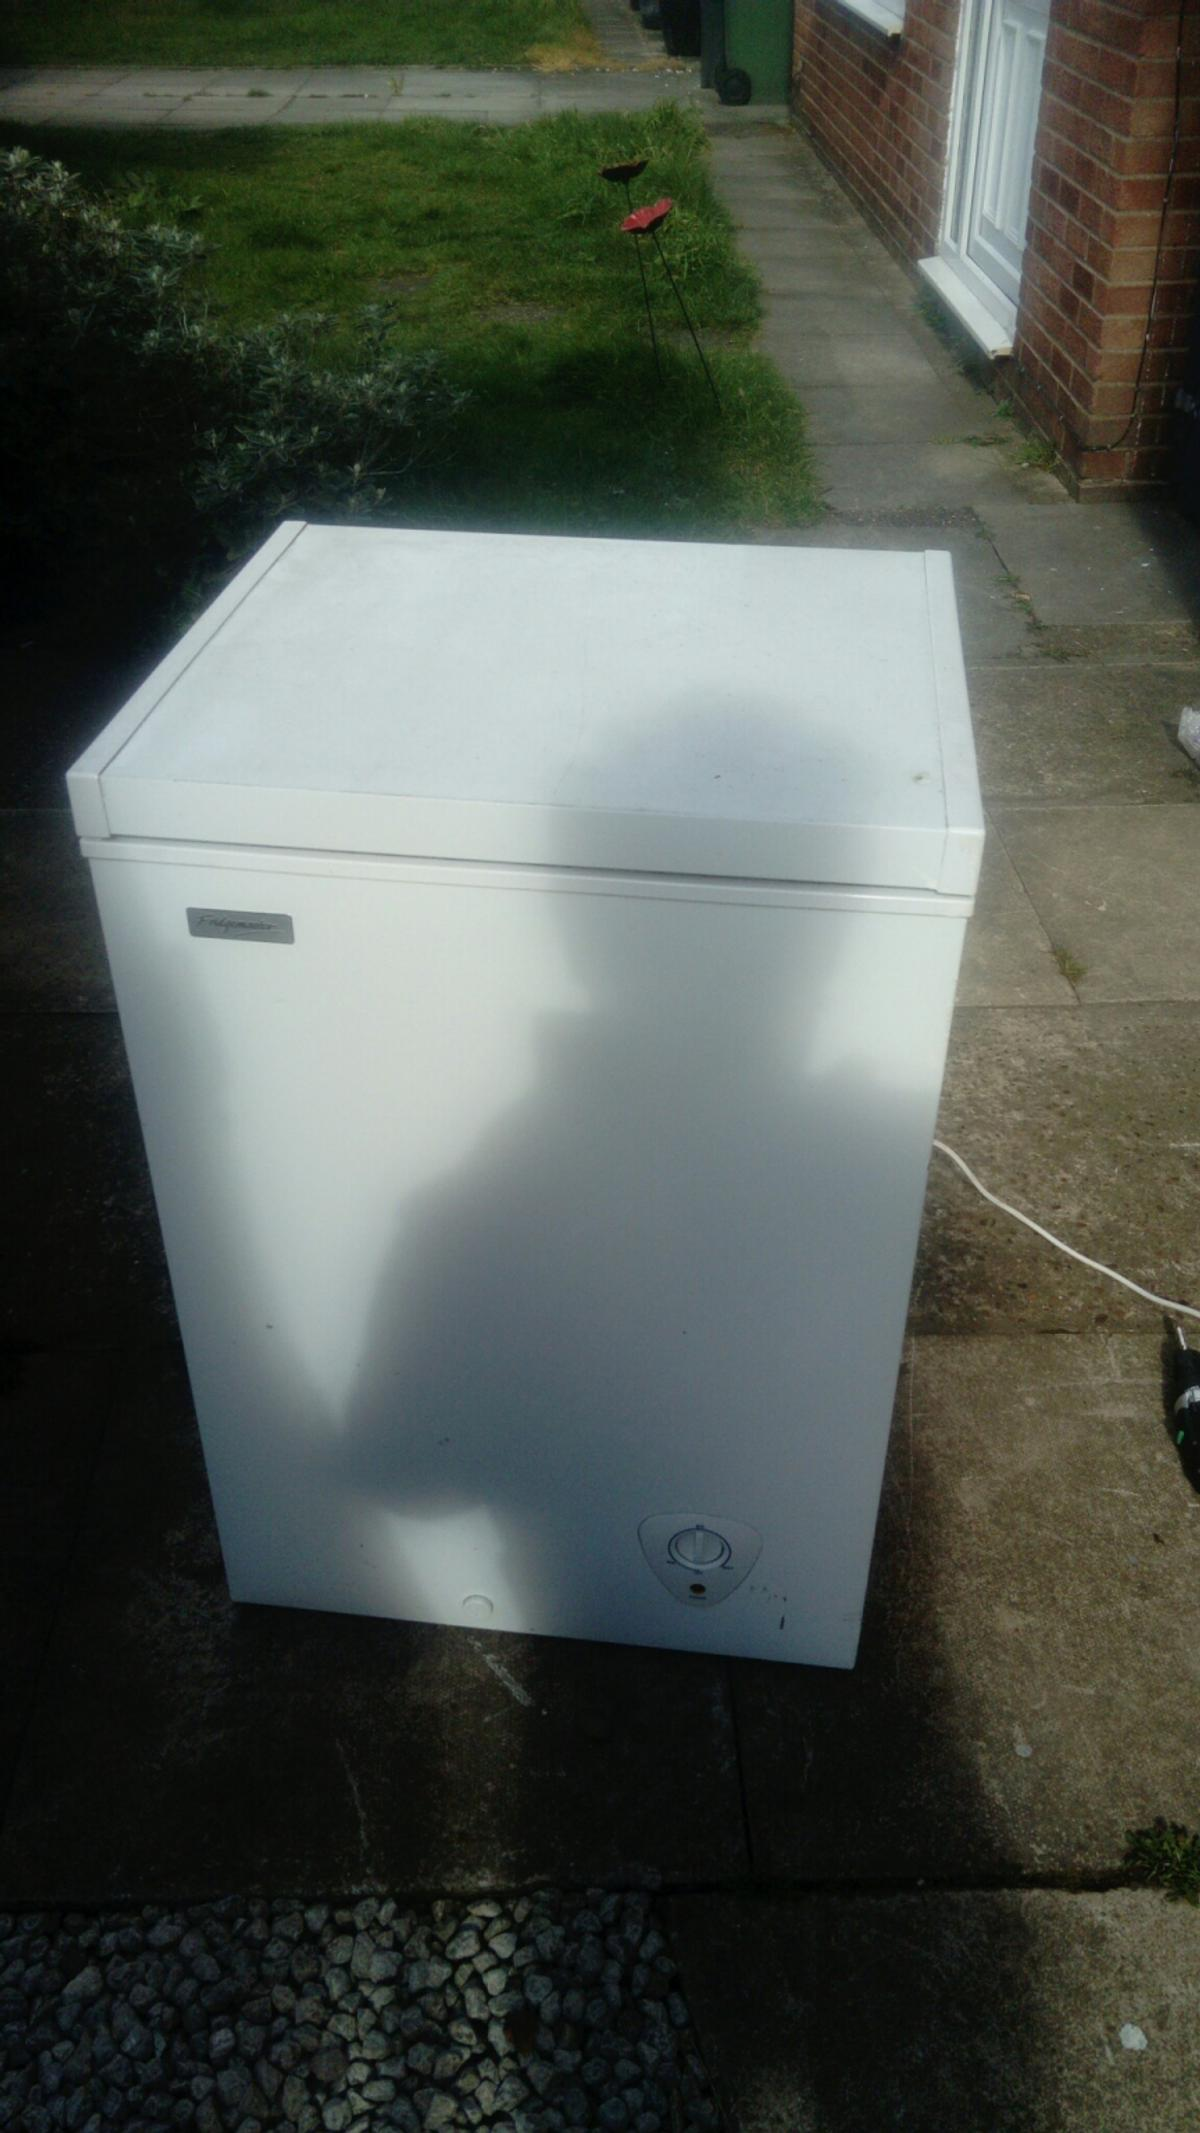 White upright free standing chest freezer 98l capacity volume lift up lid front temp control panel good used condition model less than 5 years old minor marks on lid from people putting boxes on